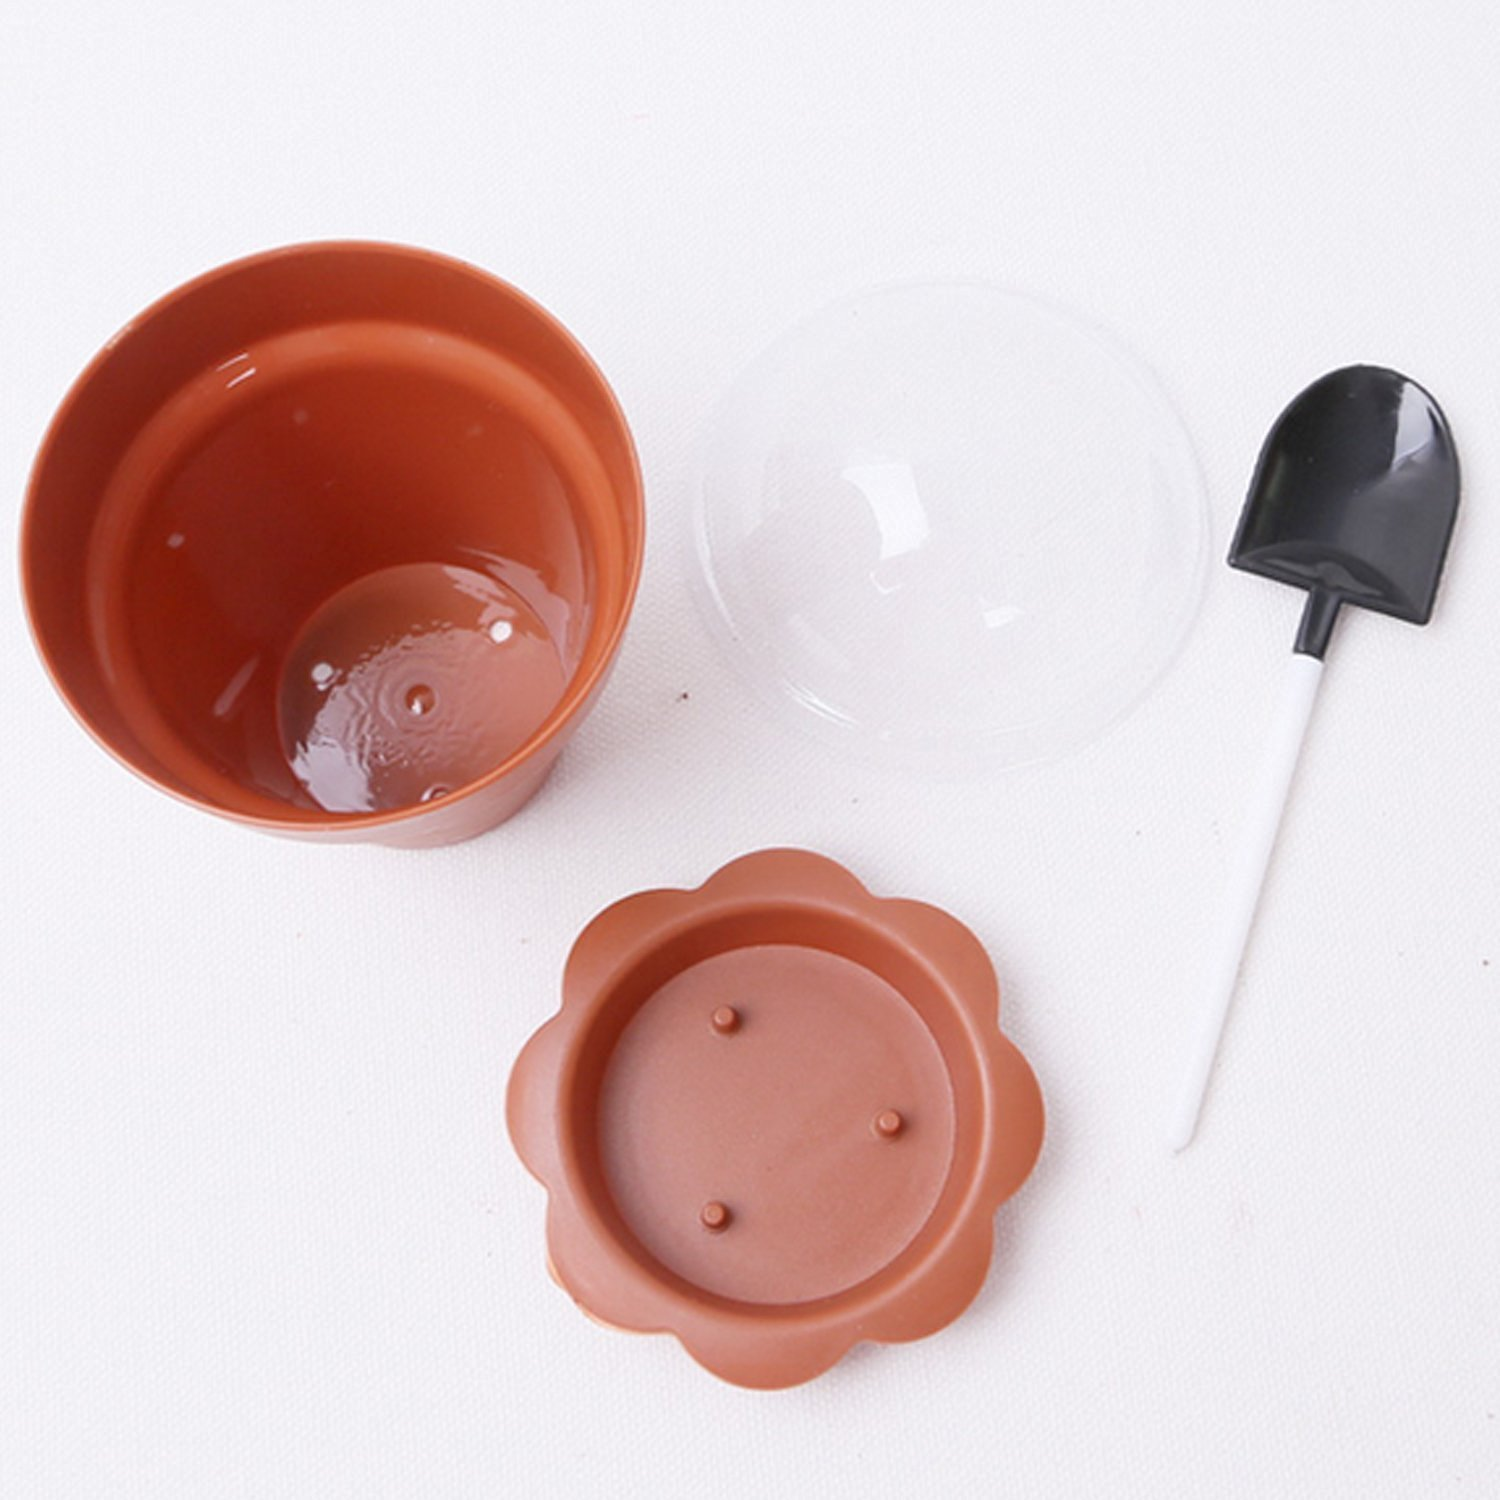 Astra shop 10 PCS Flower Potted Shape Jelly Cake Yogurt Mousse Cups with Lid and Shovel(caramel )